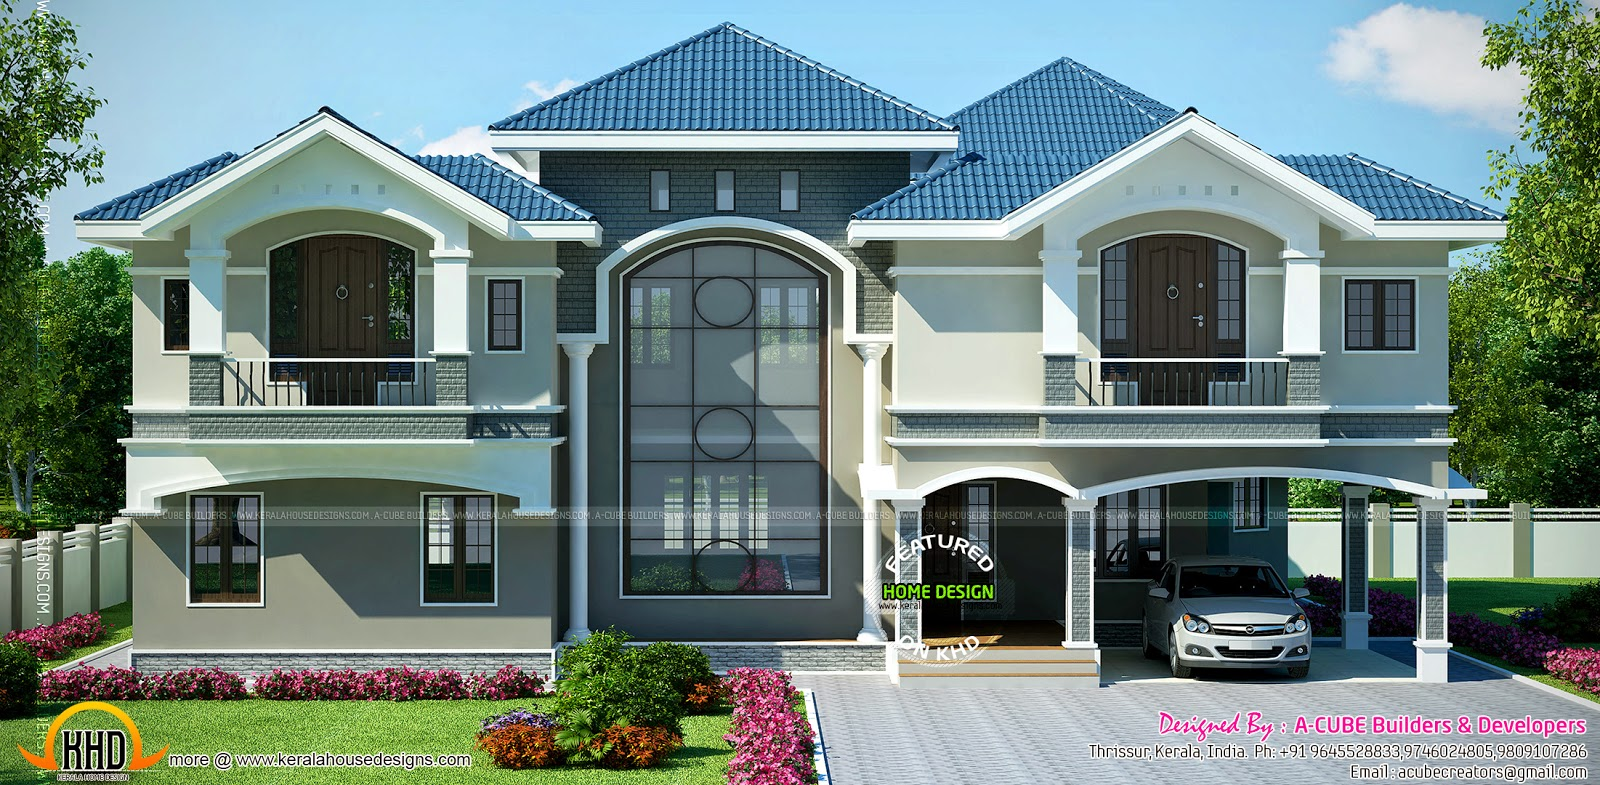 Super luxury house in beautiful style kerala home design Luxury homes blueprints